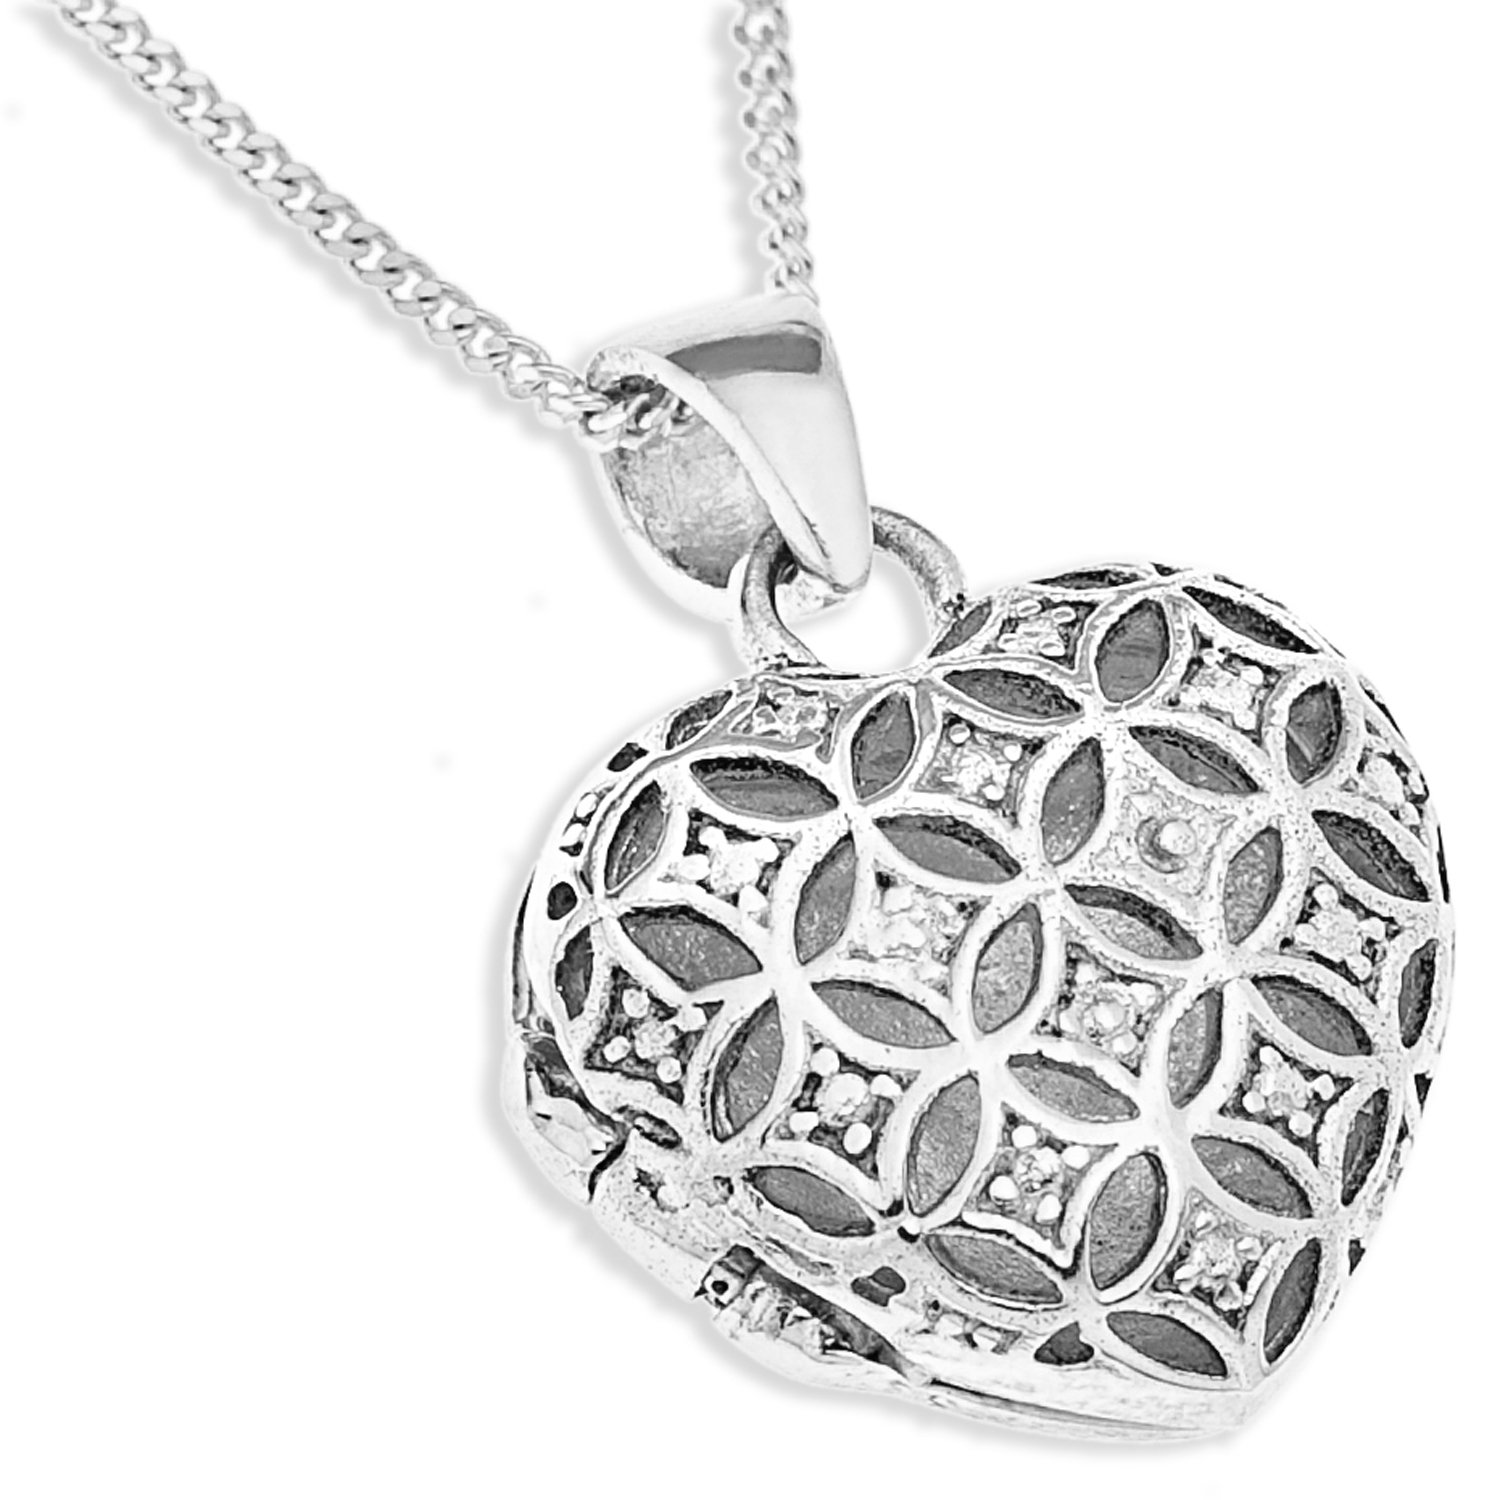 Ornami sterling silver filigree heart locket 46cm chain amazon ornami sterling silver filigree heart locket 46cm chain amazon jewellery aloadofball Image collections